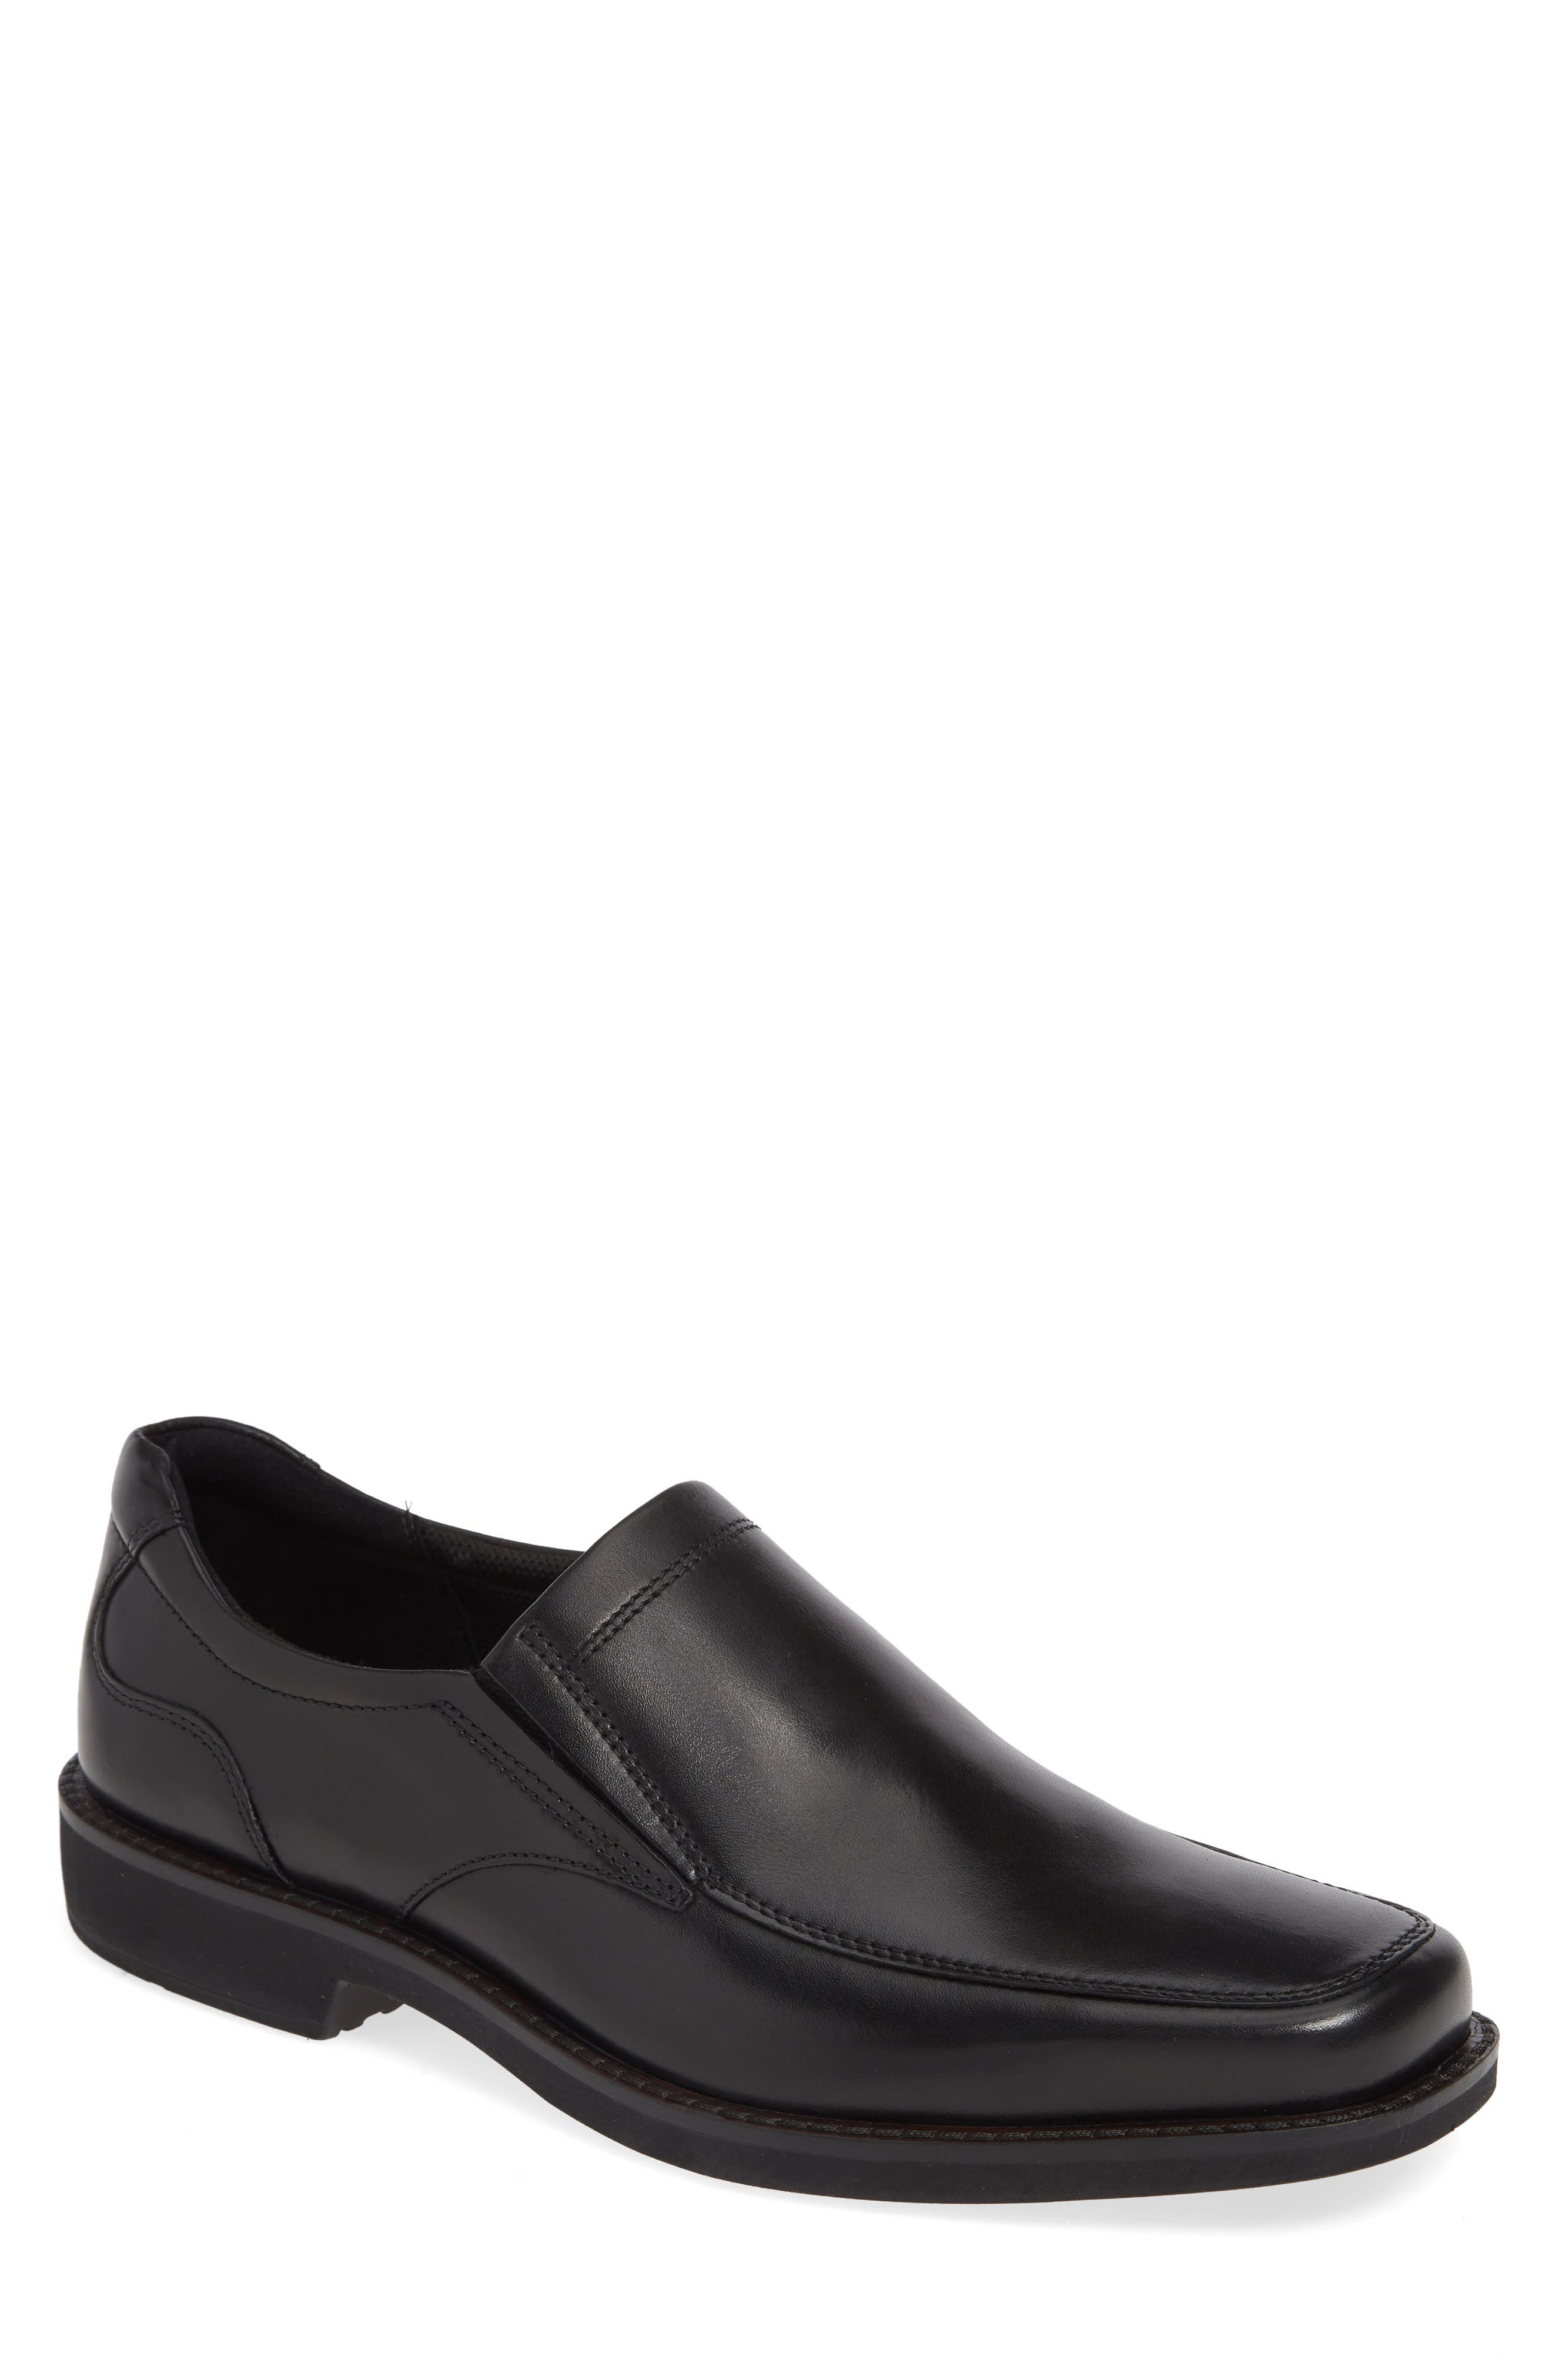 Ecco Seattle Venetian Loafer - Black